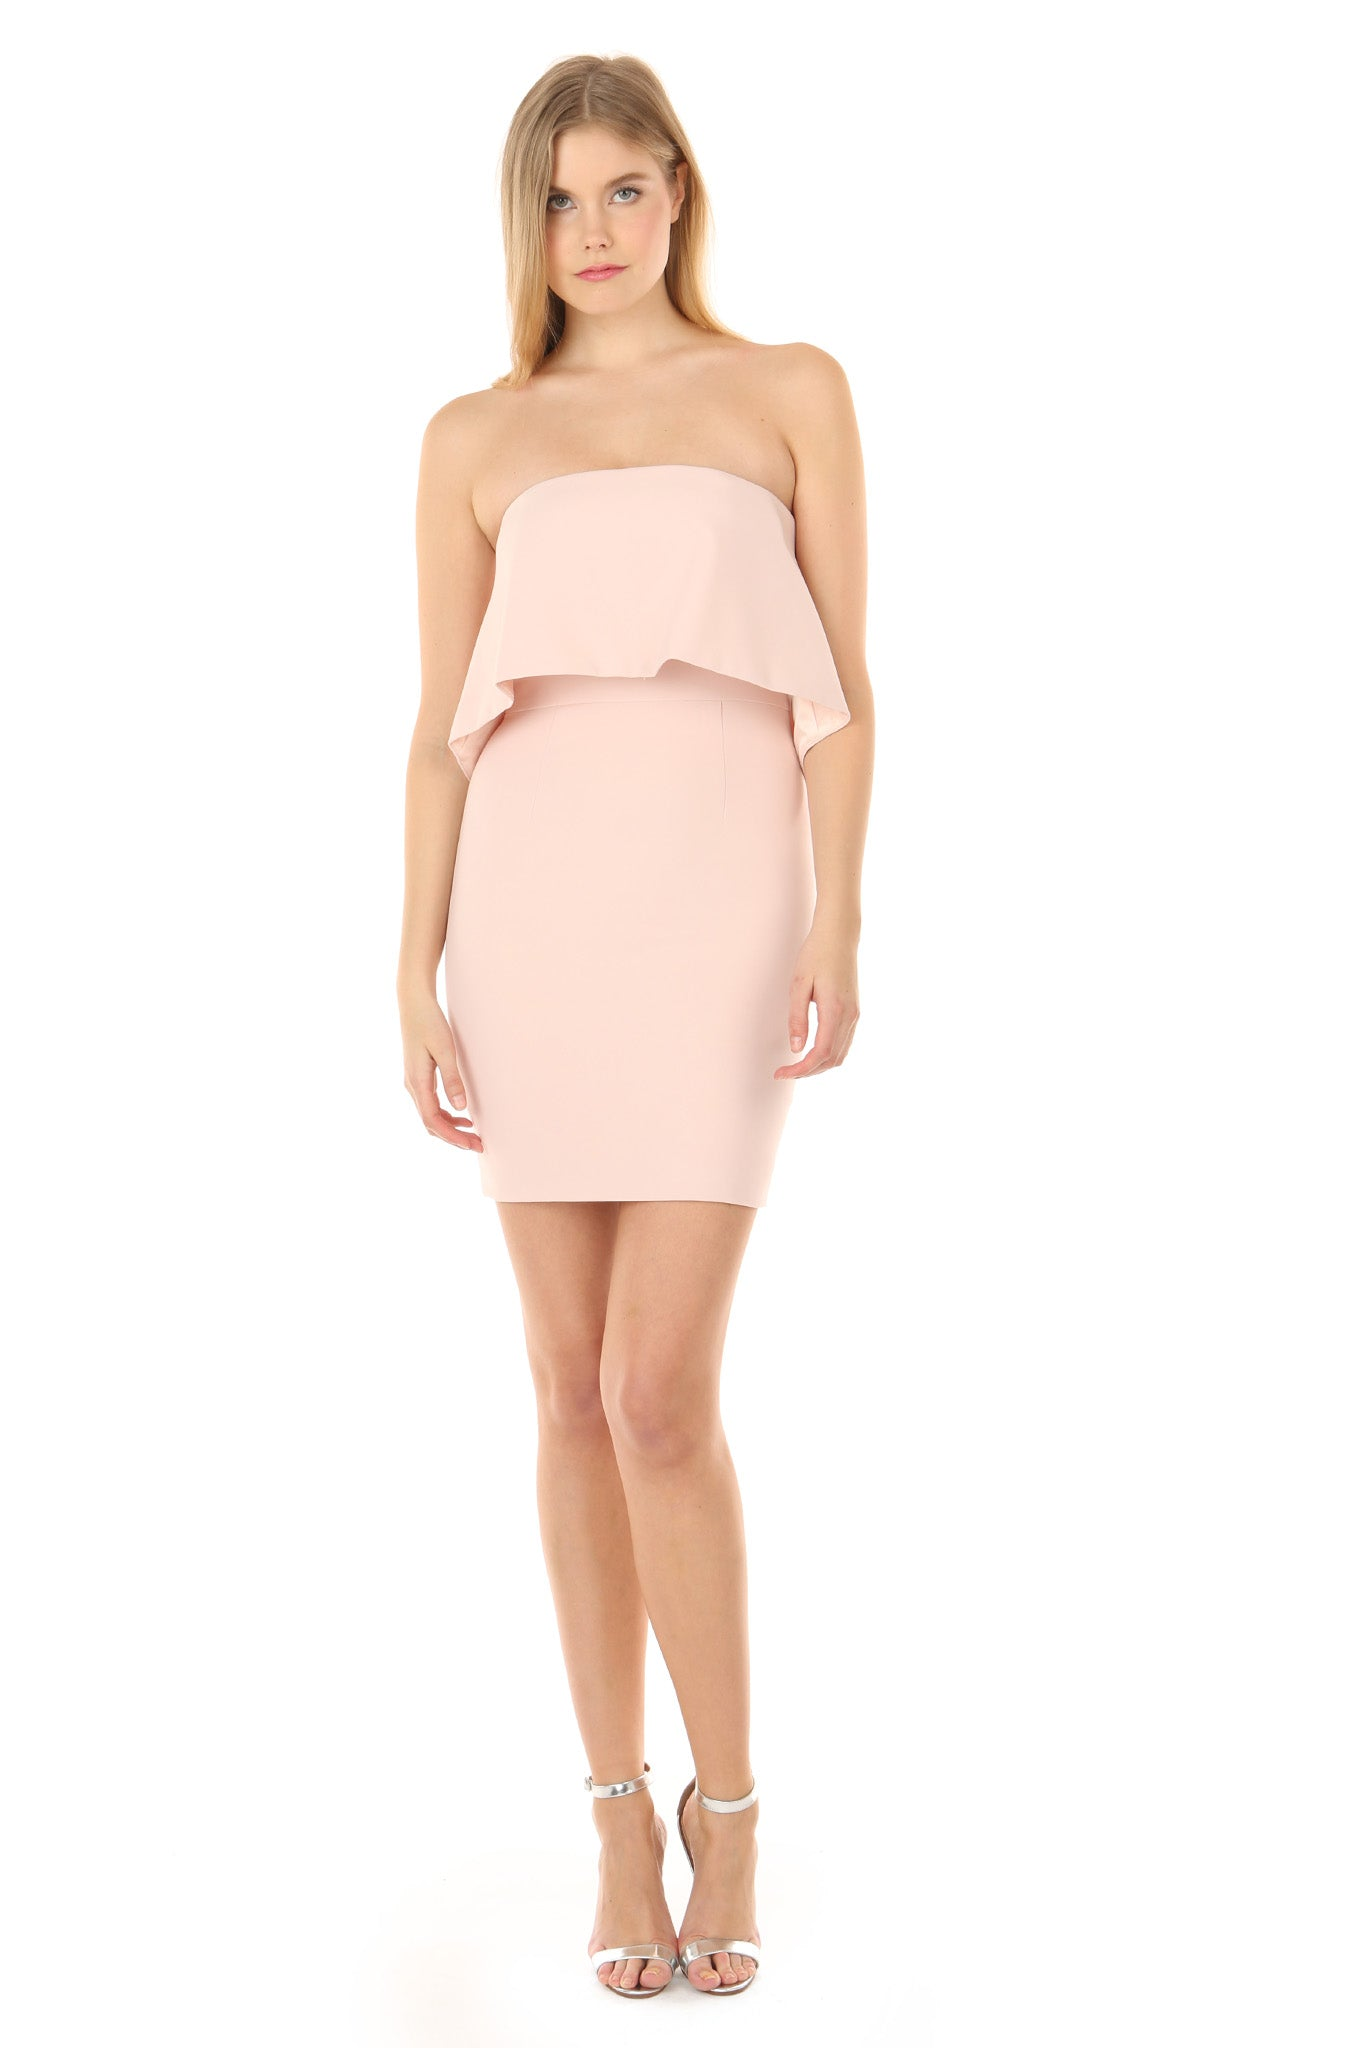 VIOLA BLUSH MINI DRESS